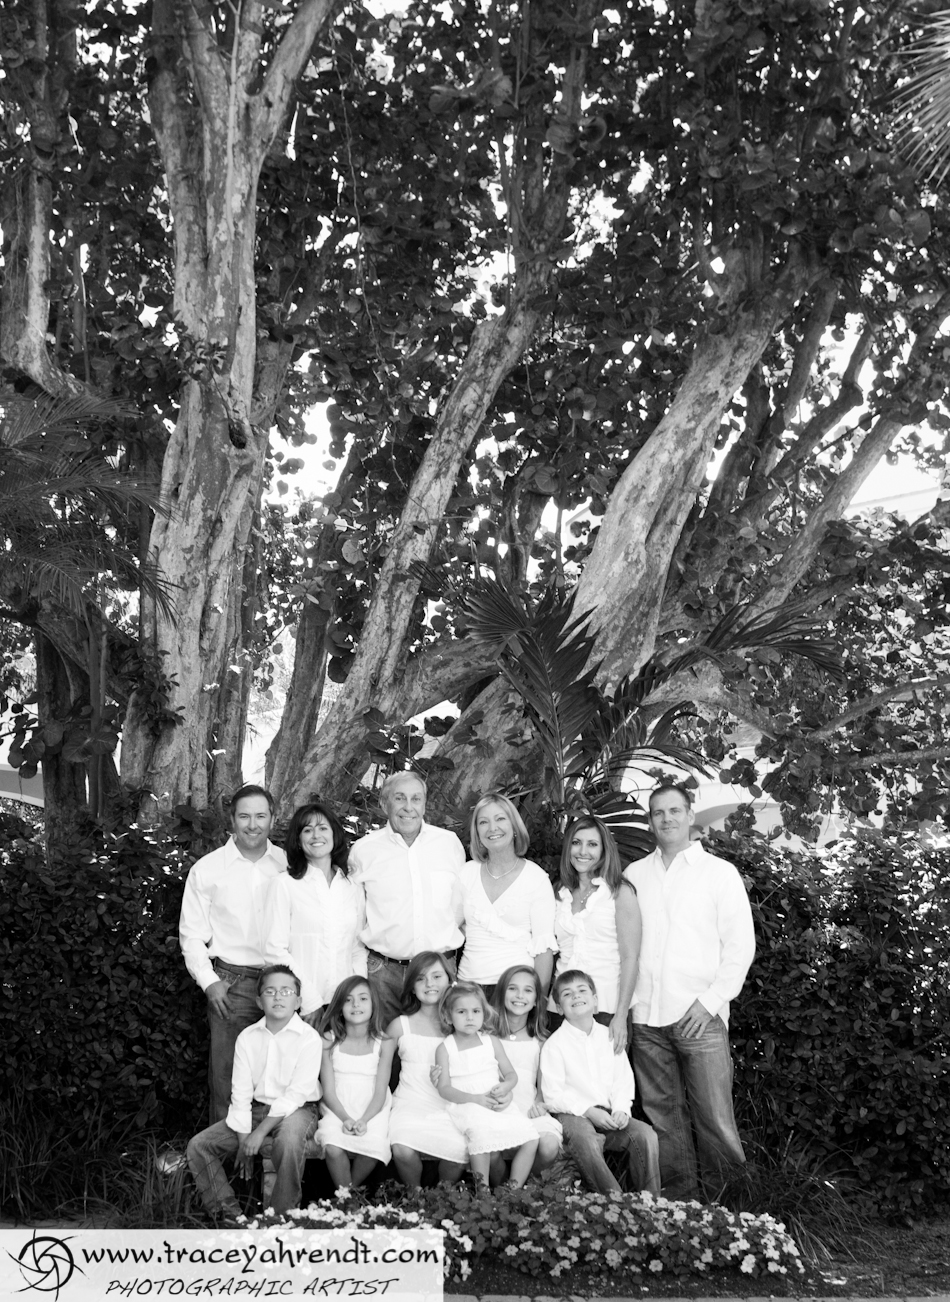 Black and White Family Portraits are always classic